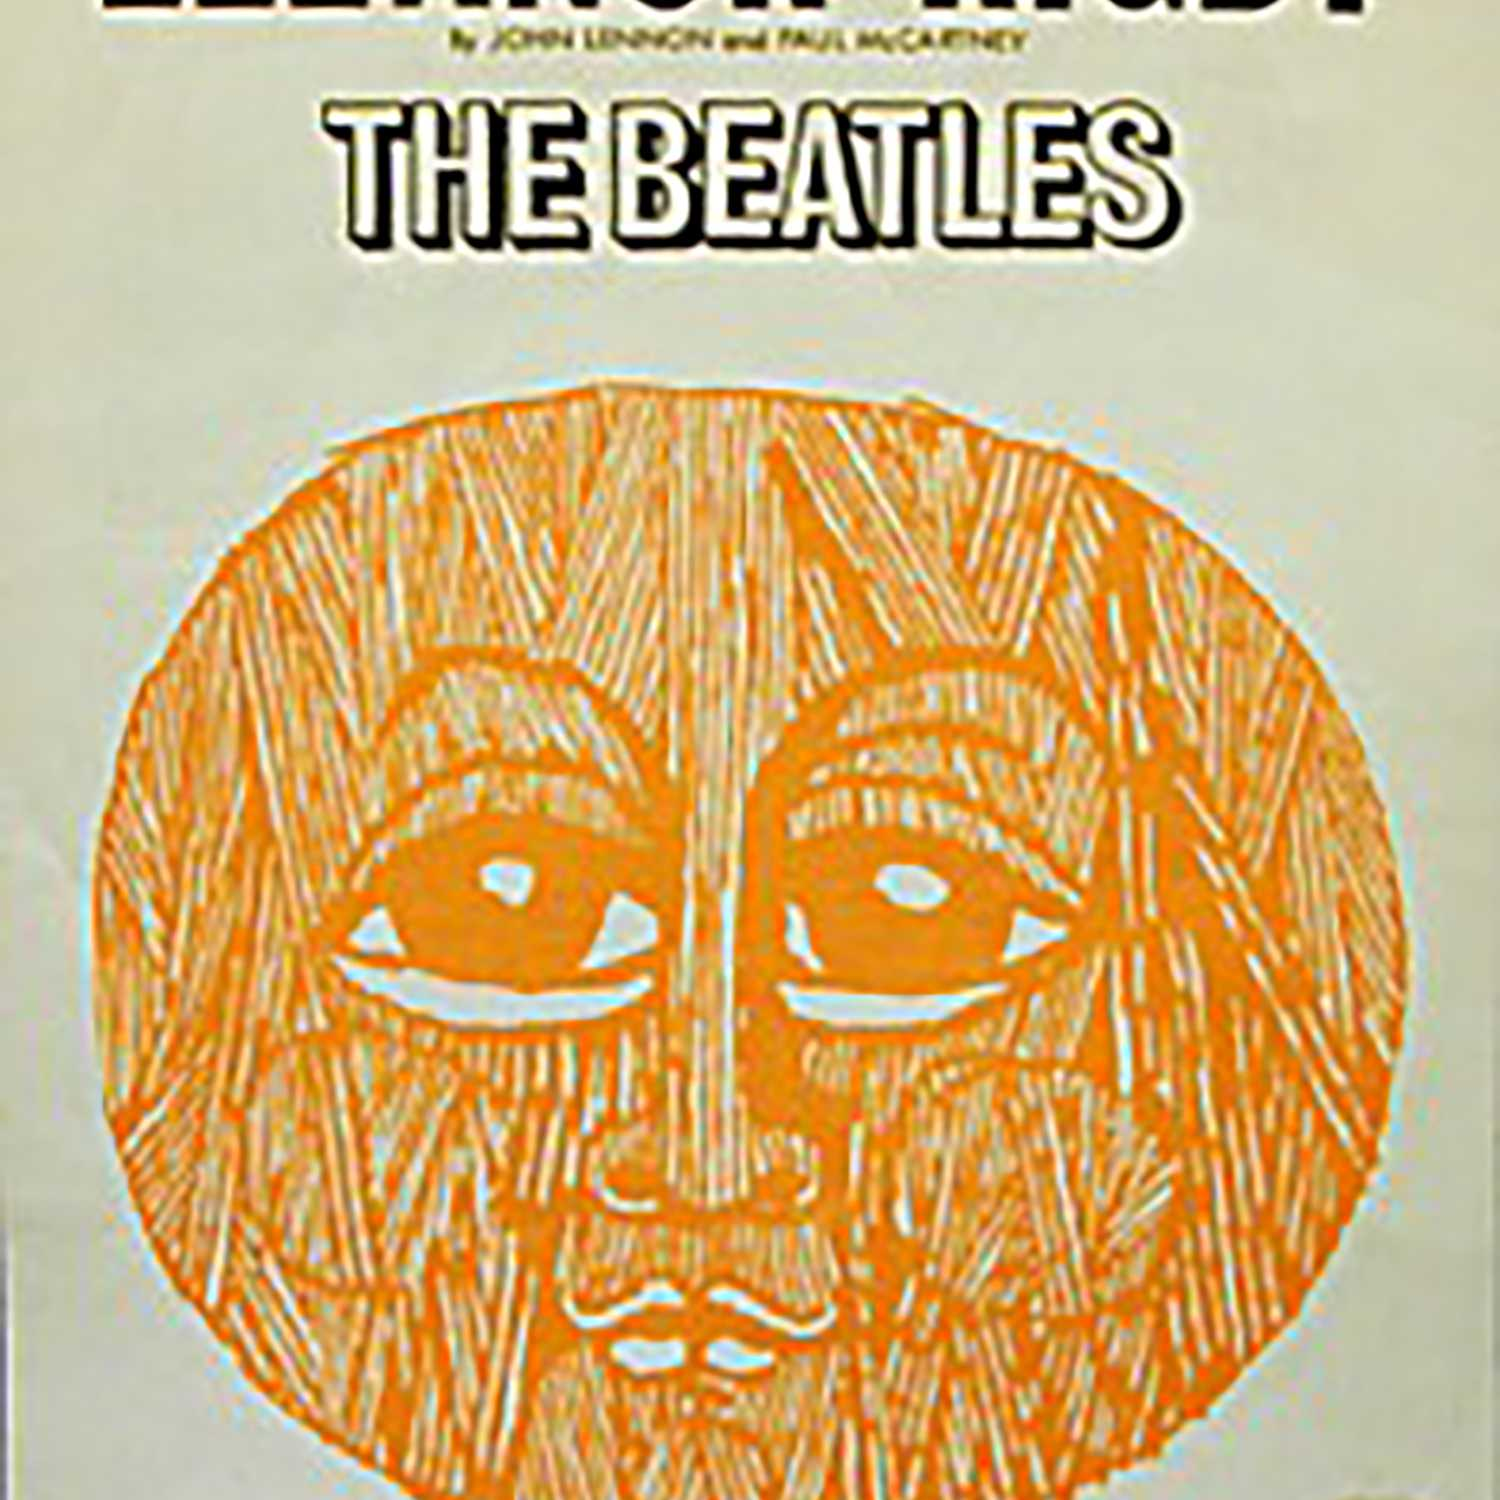 Top 10 Beatles Songs With Philosophical Themes